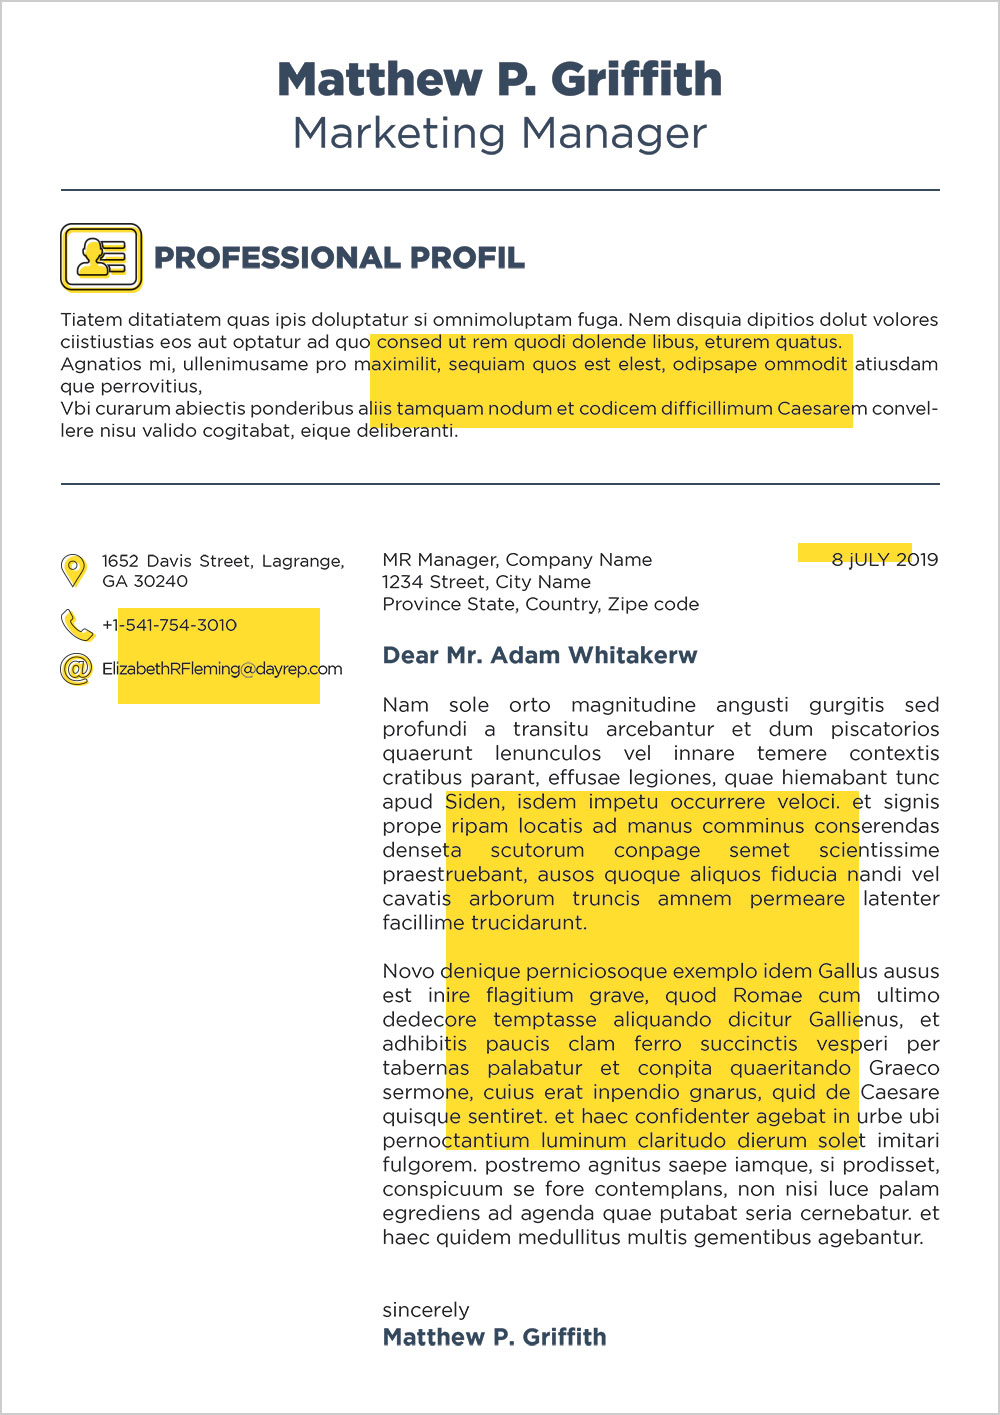 Free-Resume-CV-Template-&-Cover-Letter-in-Word-PSD-INDD-&-Ai-for-Marketing-Manager (5)